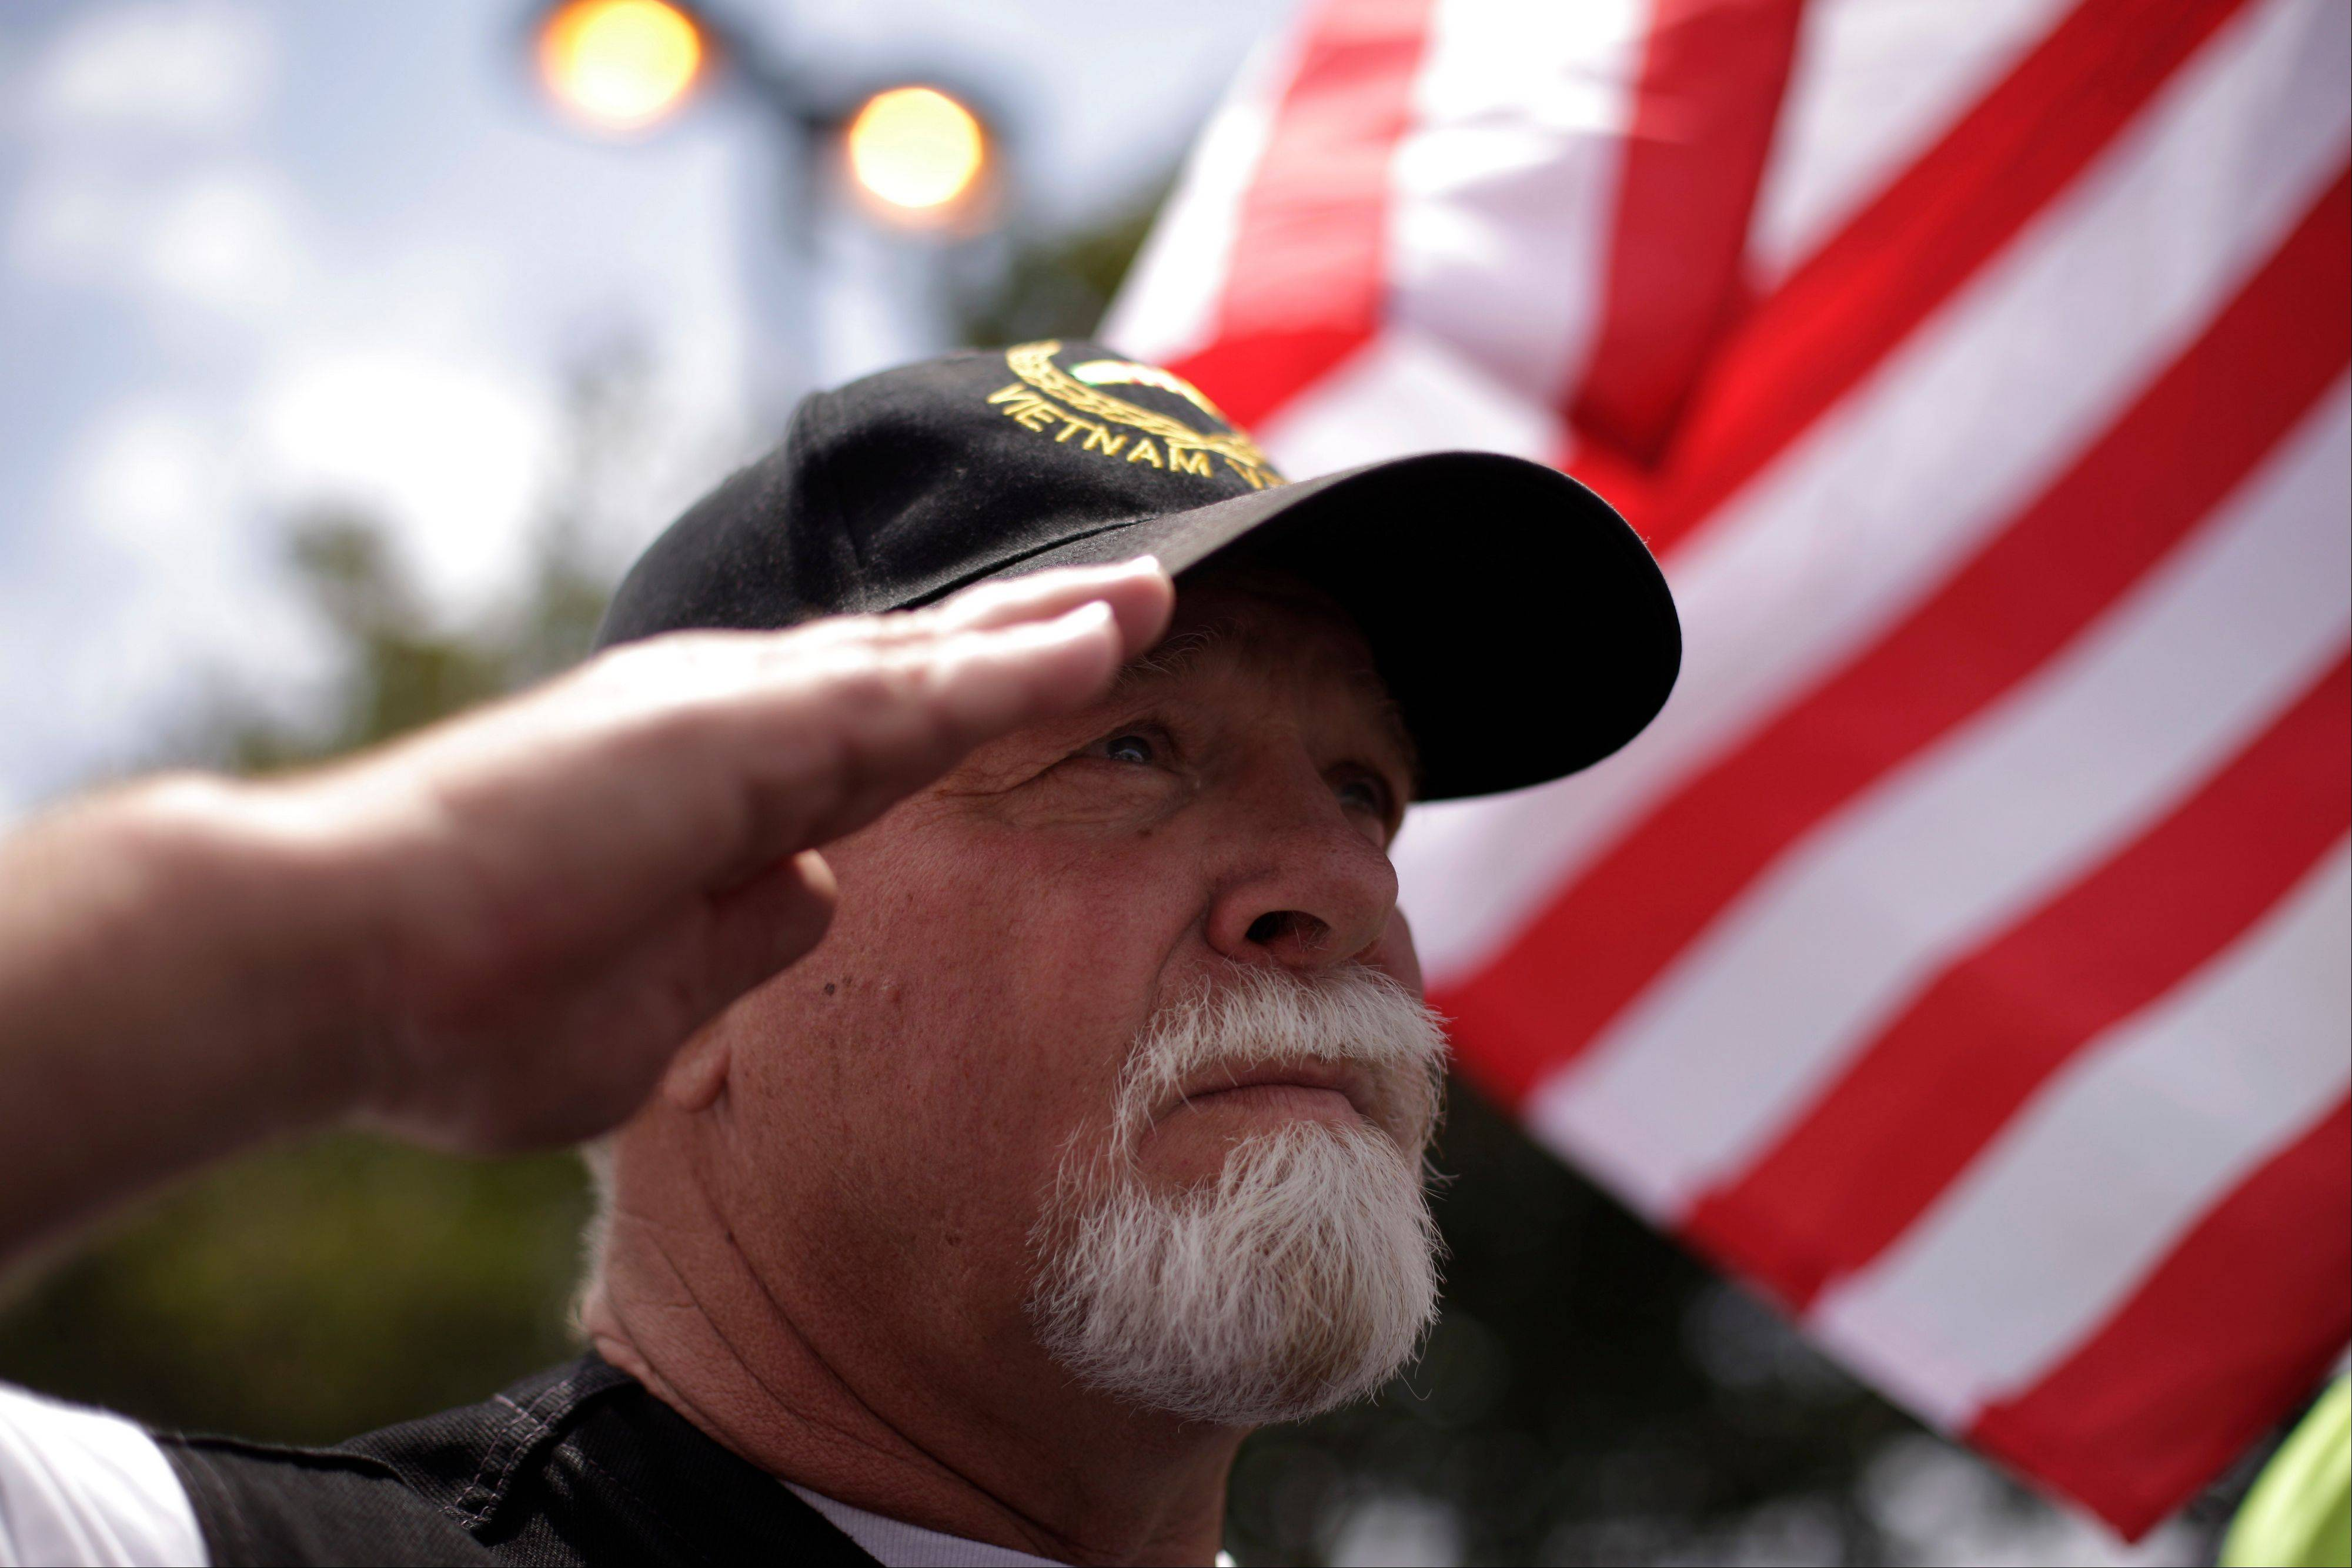 Vietnam War veteran Tedd Hybbert salutes Thursday as he watches some 200 Vietnam POWs arrive to celebrate their 40th reunion at the Richard Nixon Presidential Library & Museum in Yorba Linda, Calif.